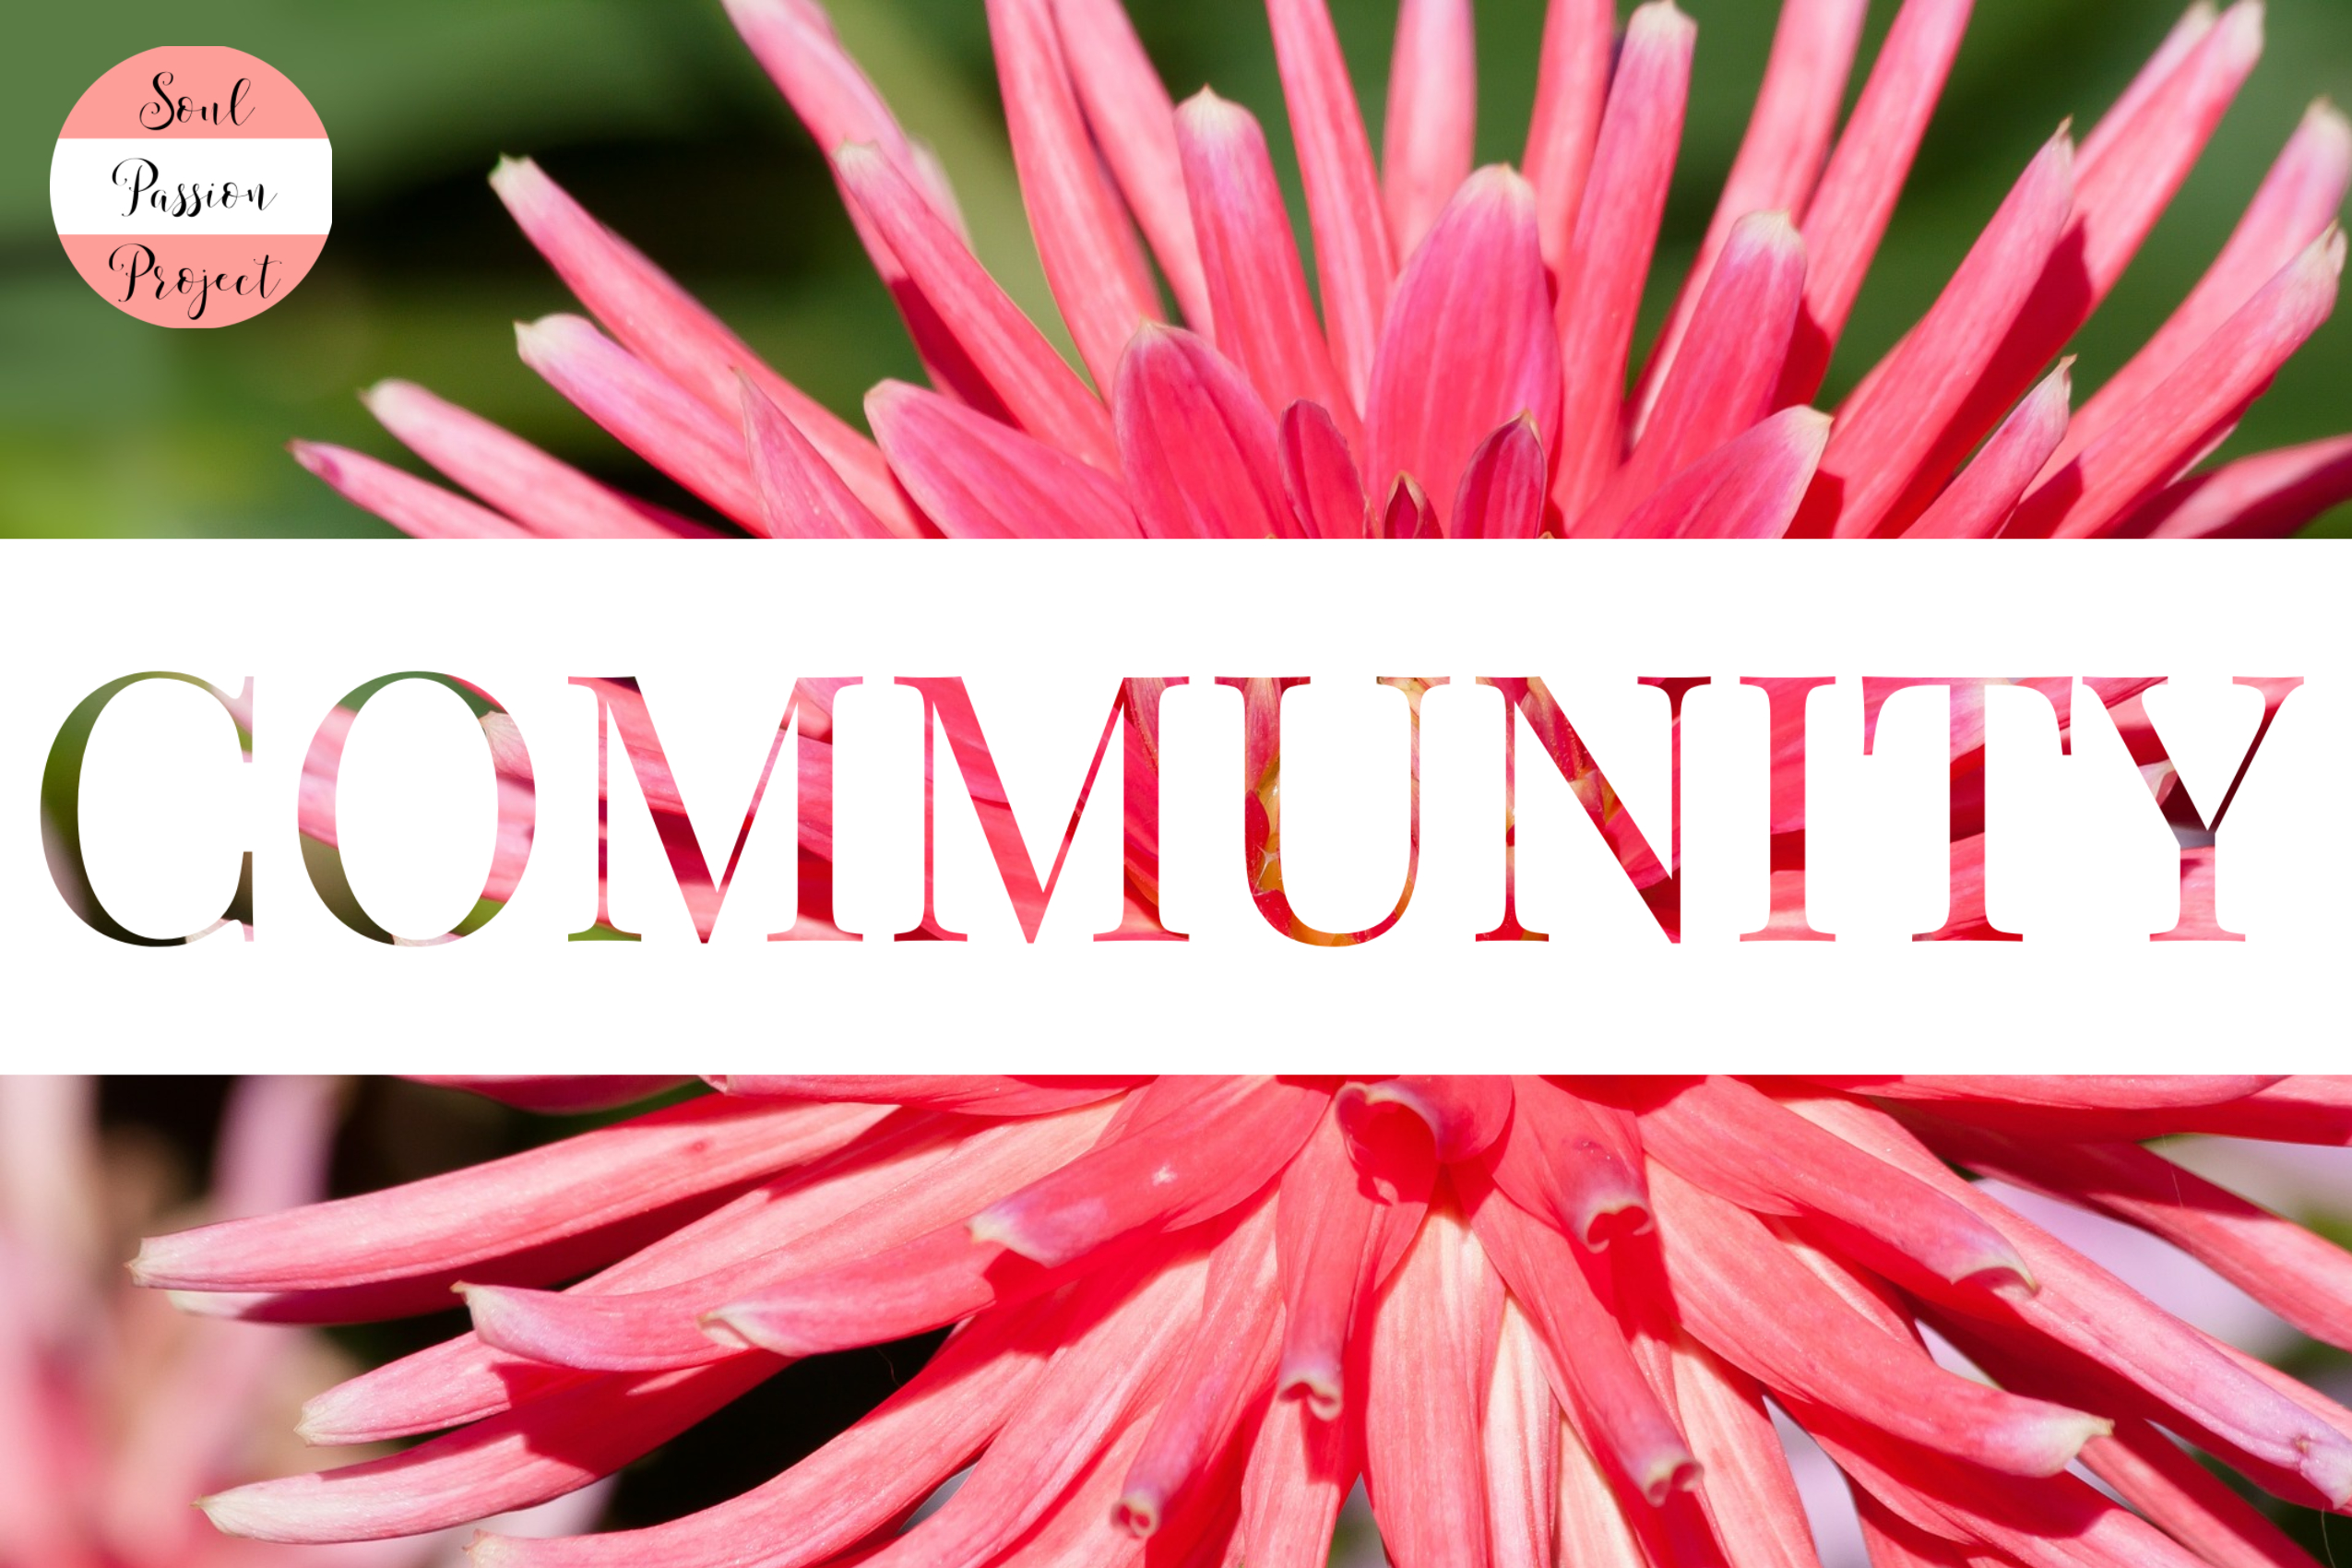 Image is a rectangle with a background image of a pink flower with bursting rays of petals with a white banner running through the middle with the word COMMUNITY in a cutout font allowing the flower to show through the lettering. The Soul Passion Project Logo is in the upper right corner of the image.